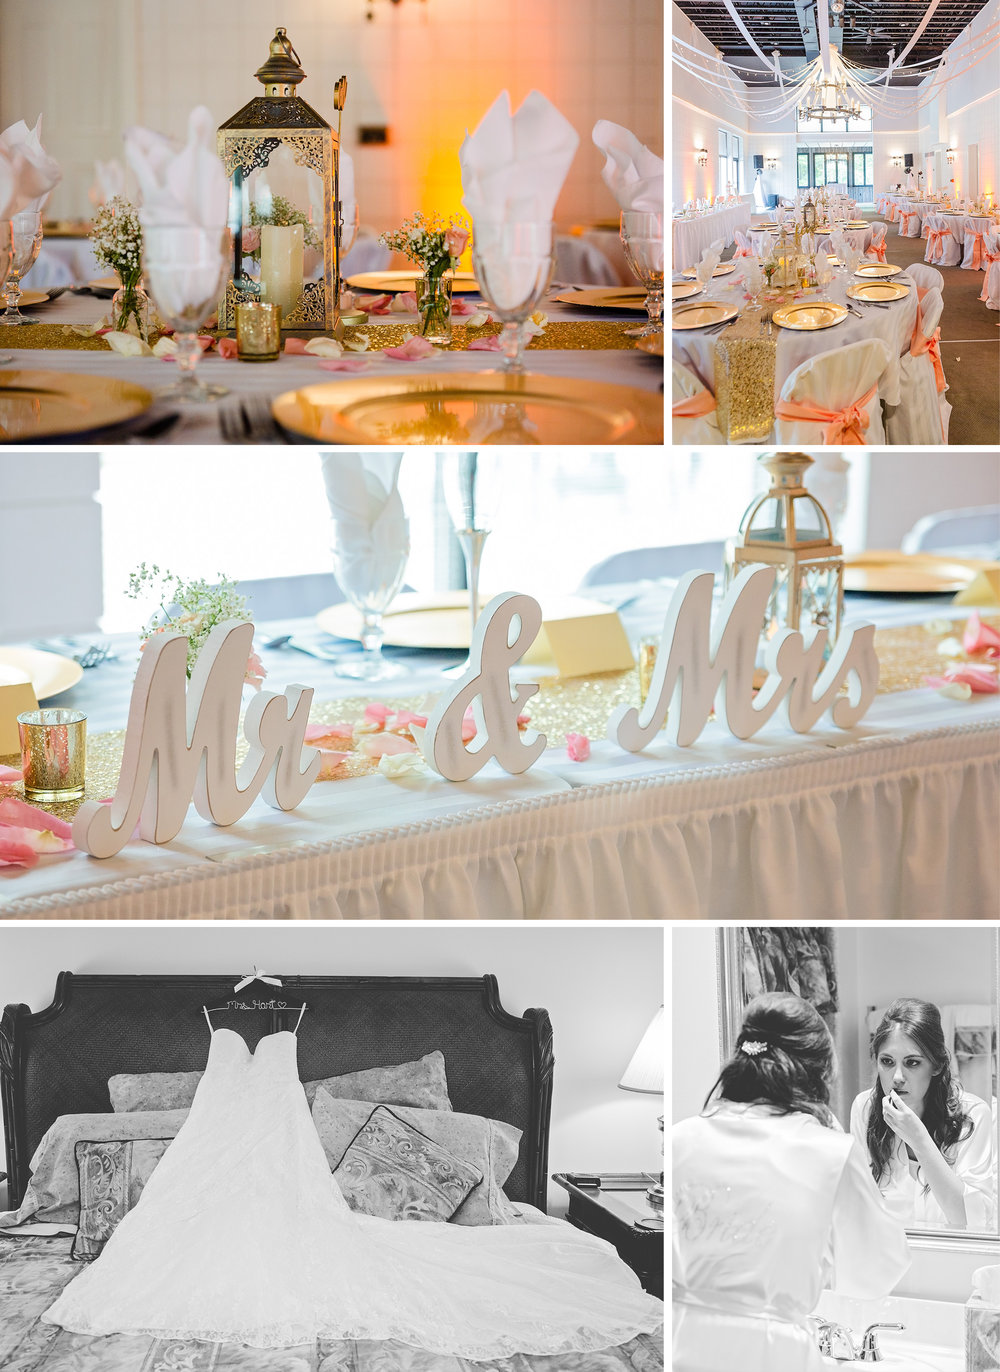 Hart_wedding_blogCollage-1.jpg